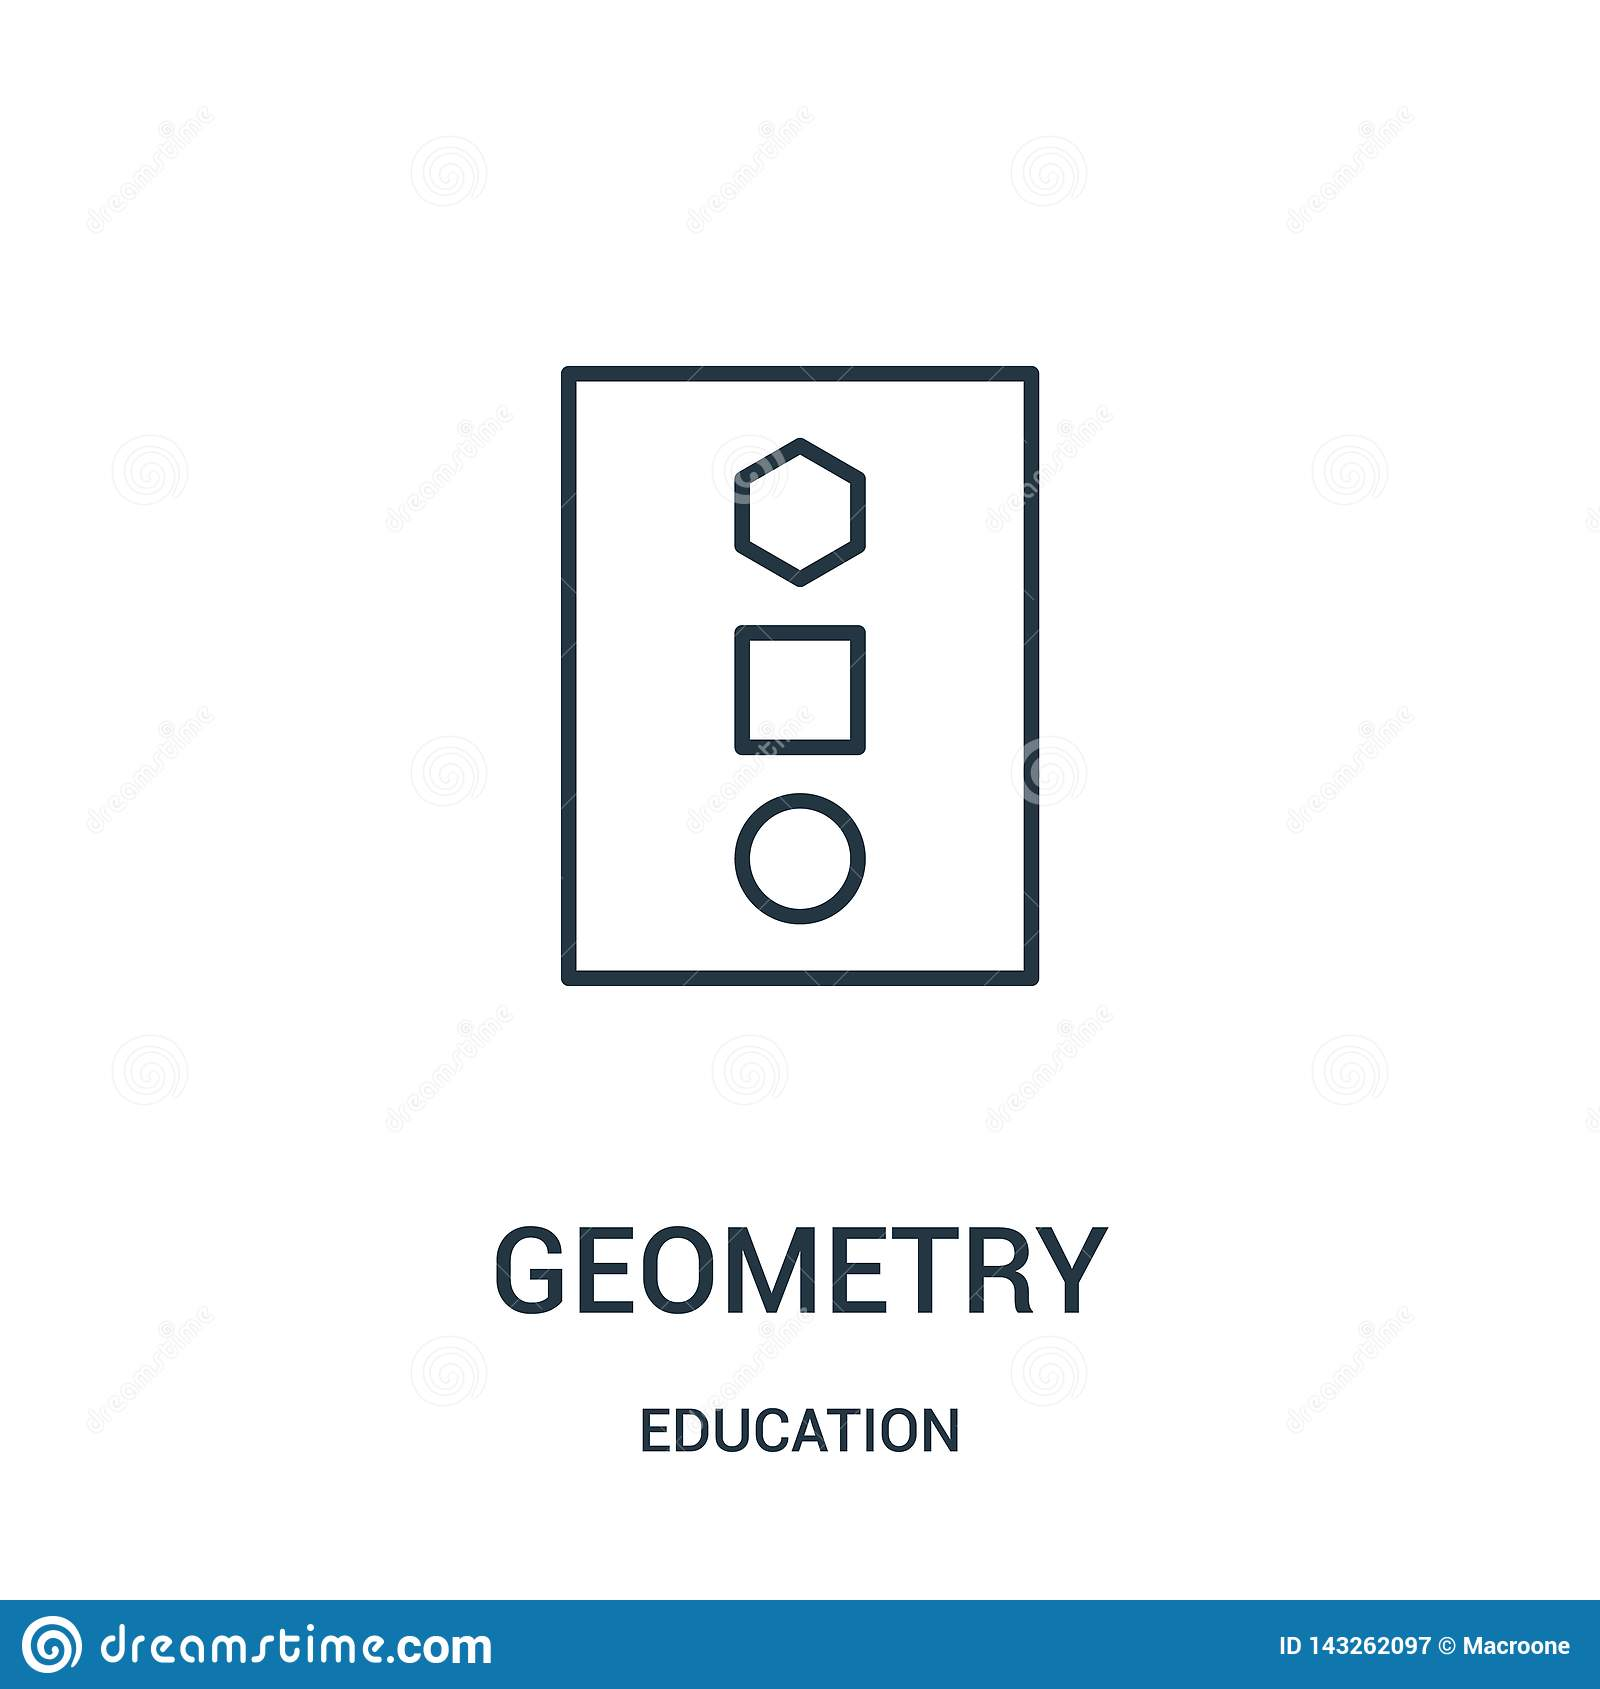 geometry icon vector from education collection. Thin line geometry outline icon vector illustration